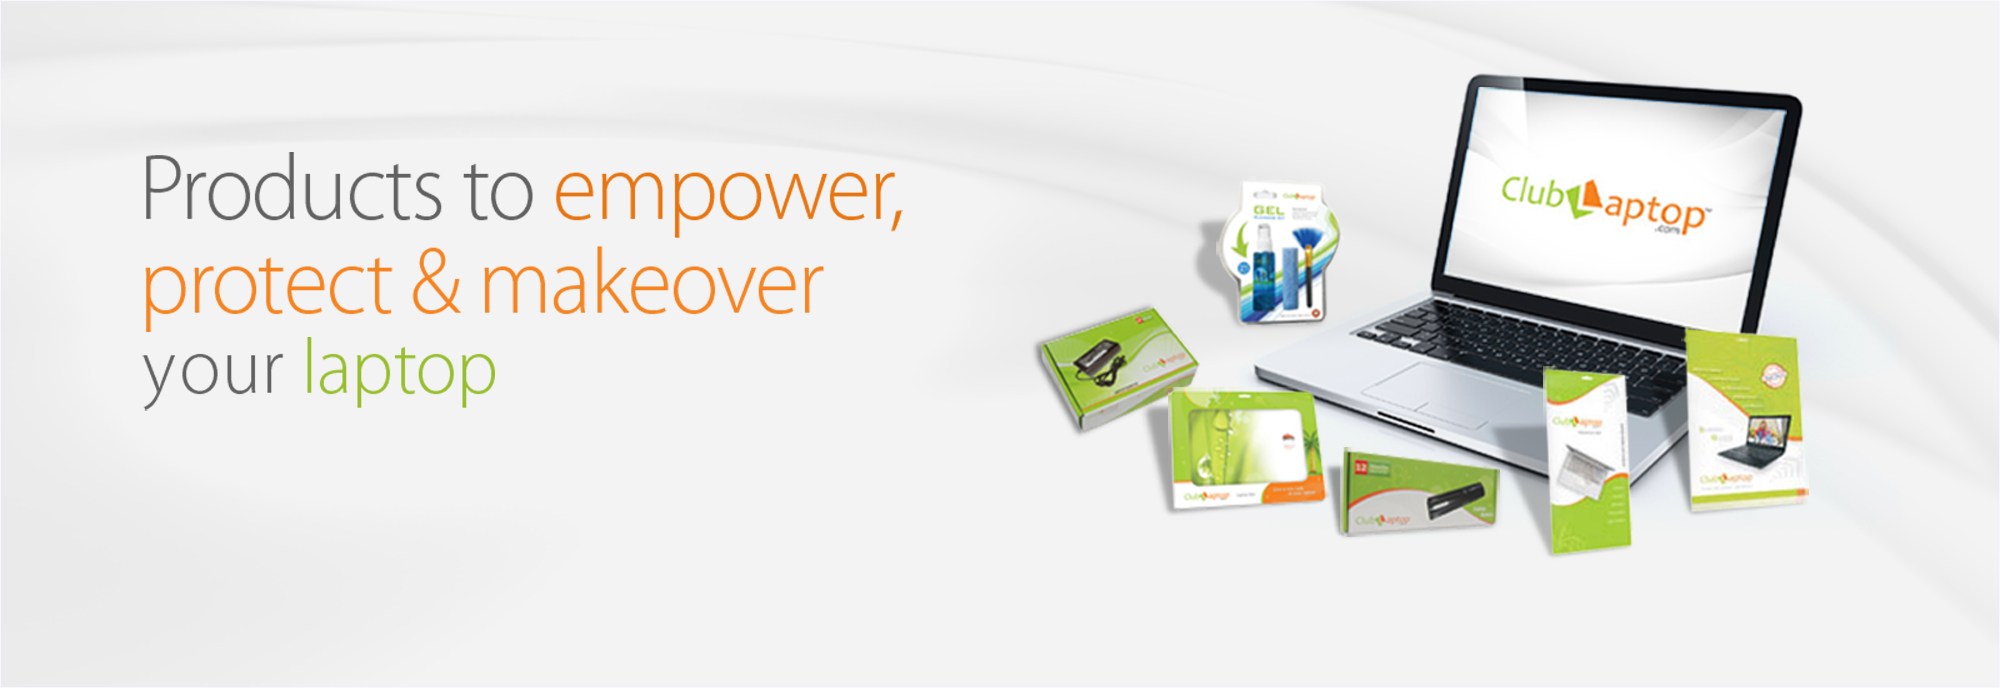 Clublaptop products to empower protect & makeover your laptop